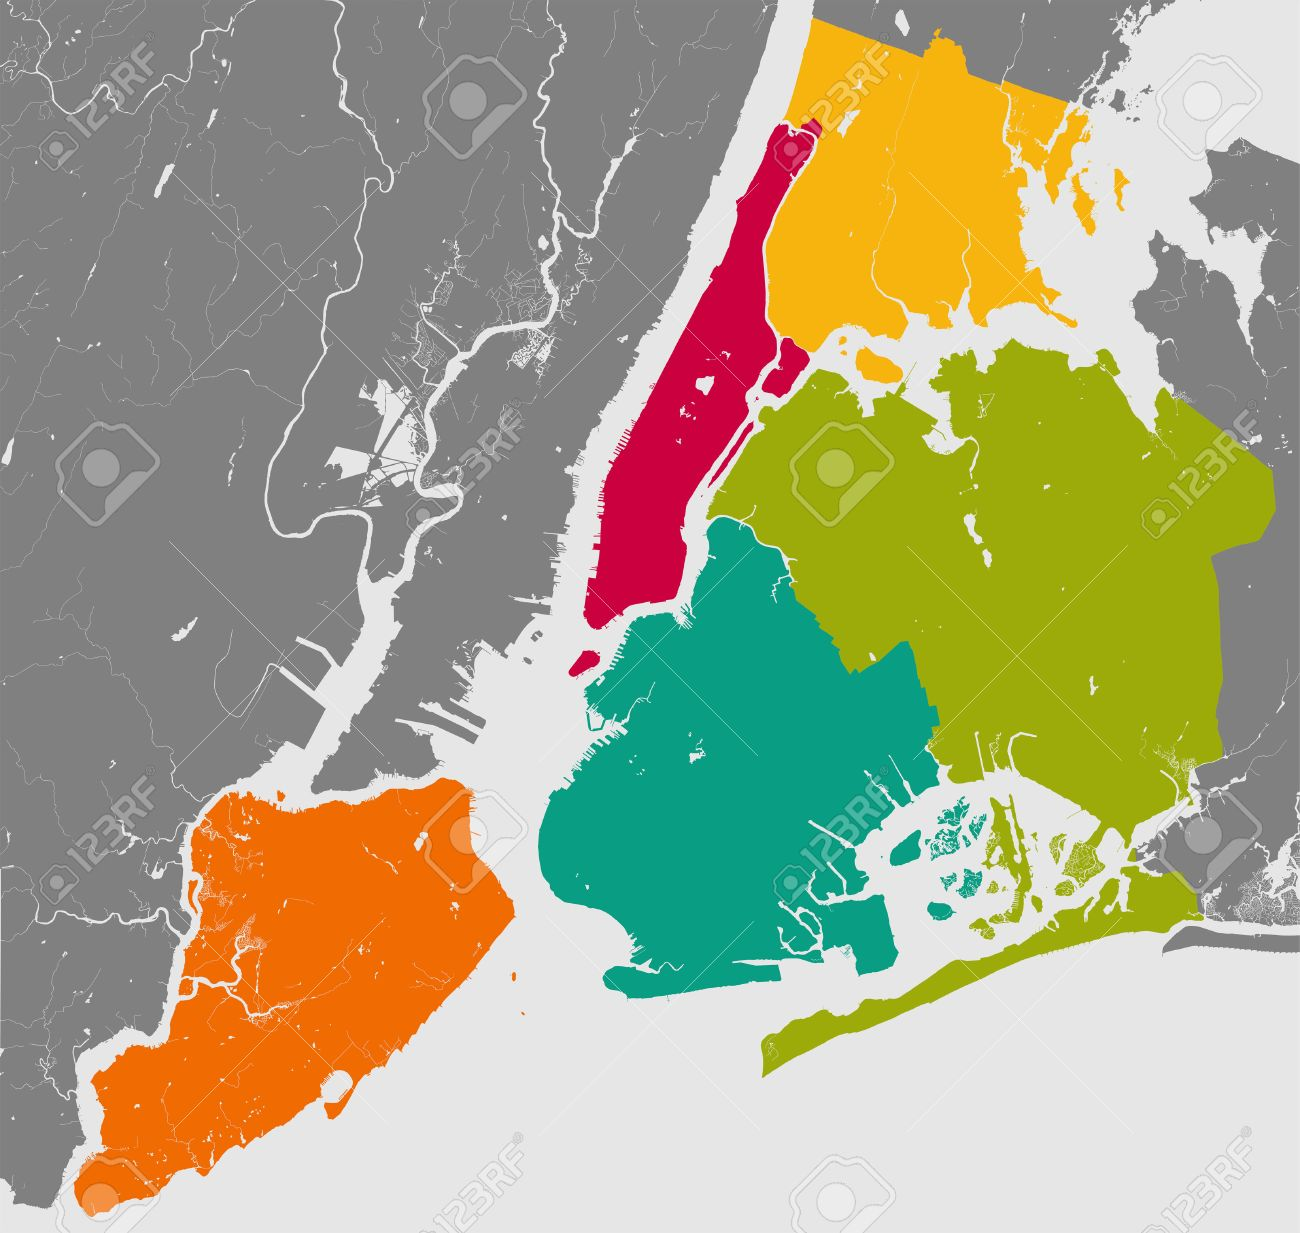 High resolution outline map of New York City with NYC boroughs...